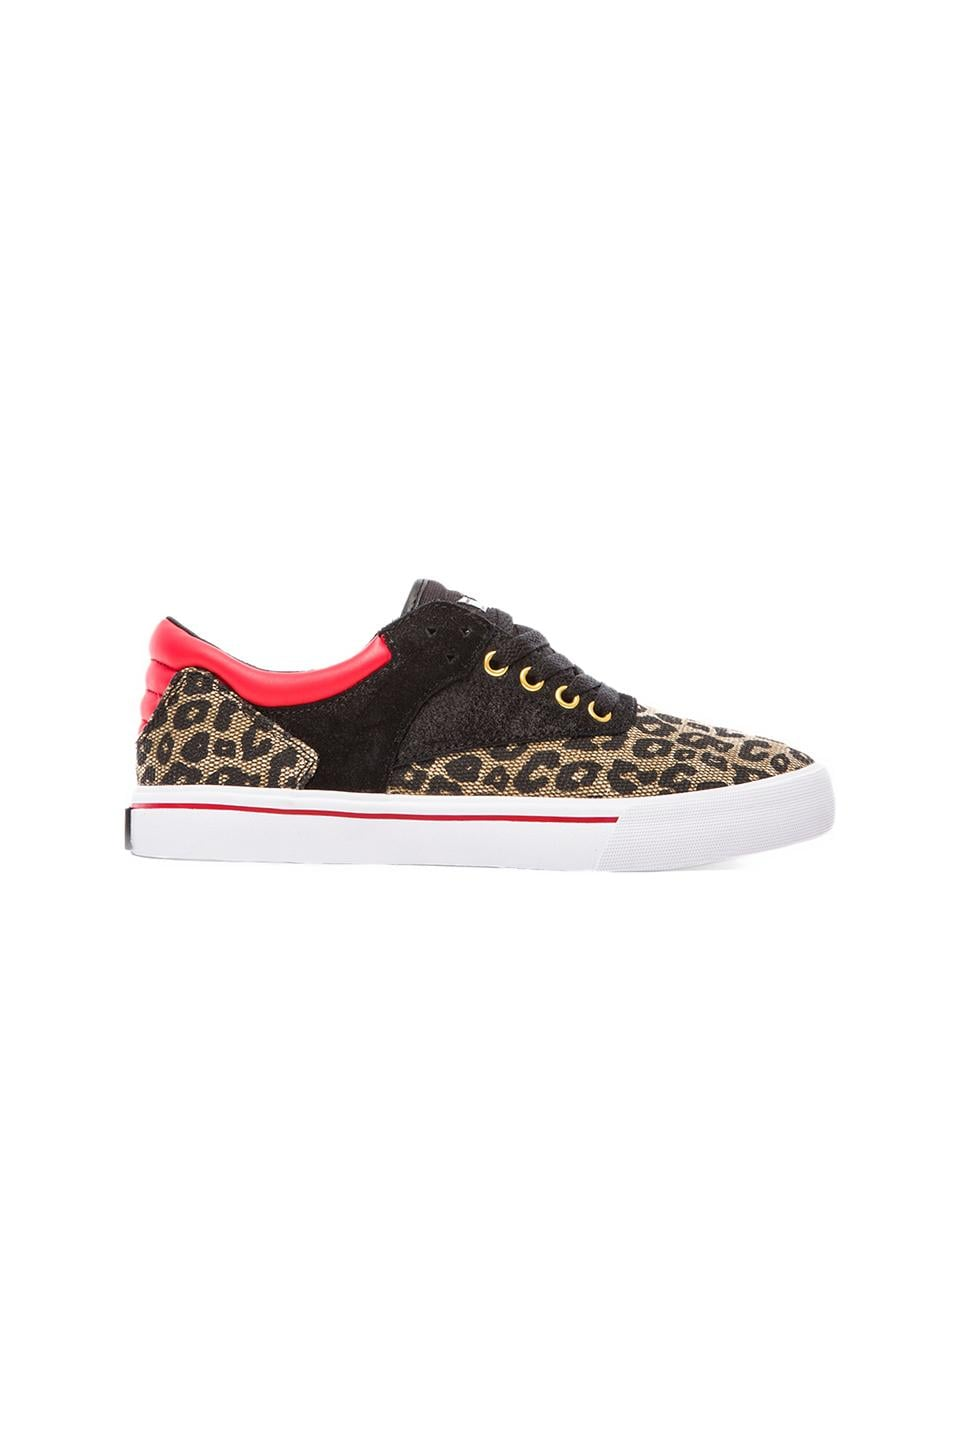 Supra Griffin in Cheetah/Black